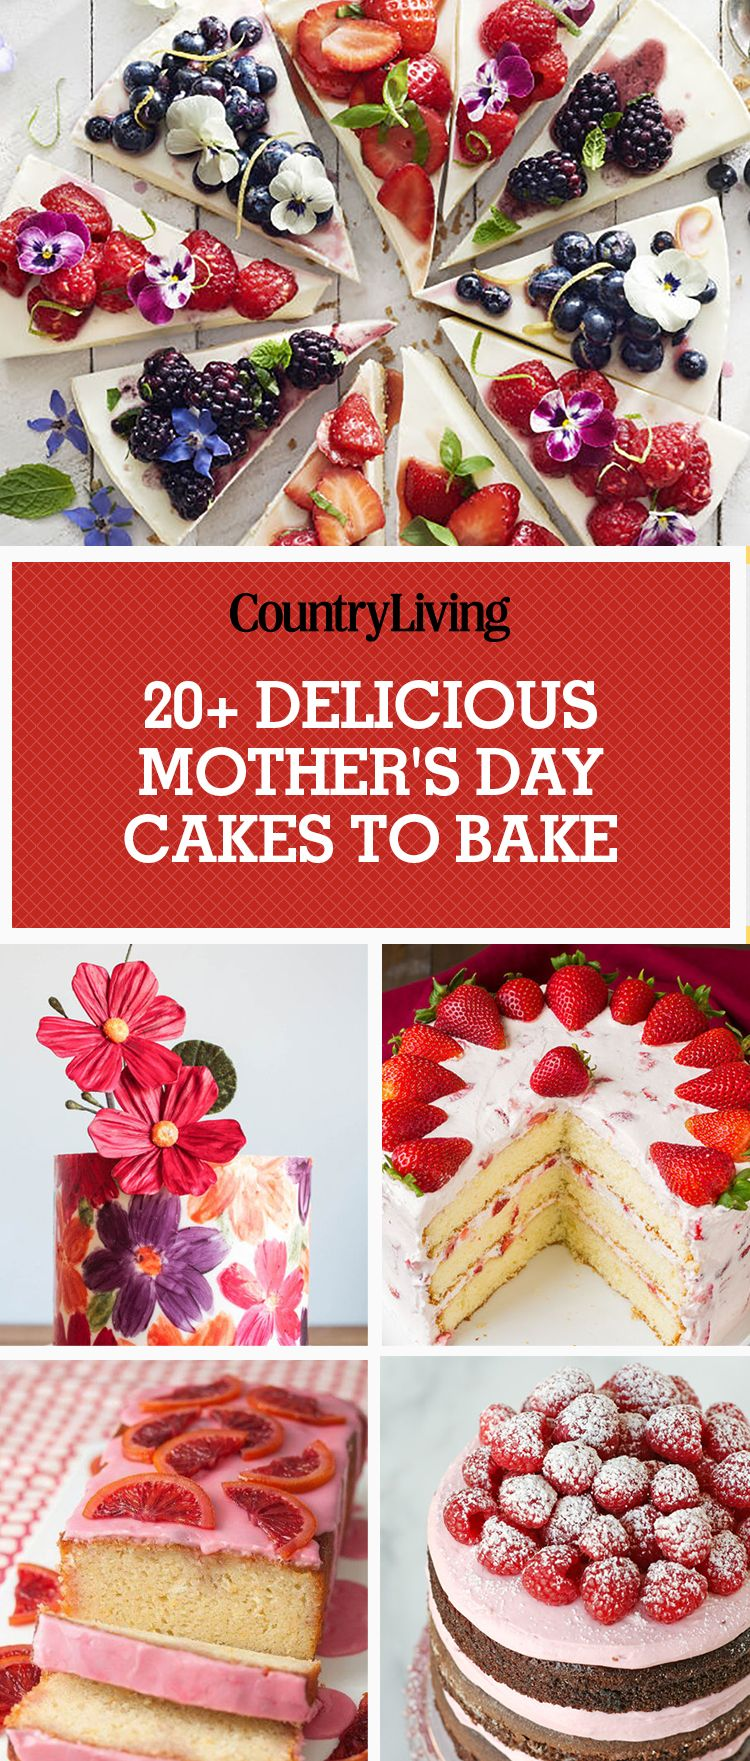 30 Best Mothers Day Cakes Recipe Ideas For Cakes Mom Will Love